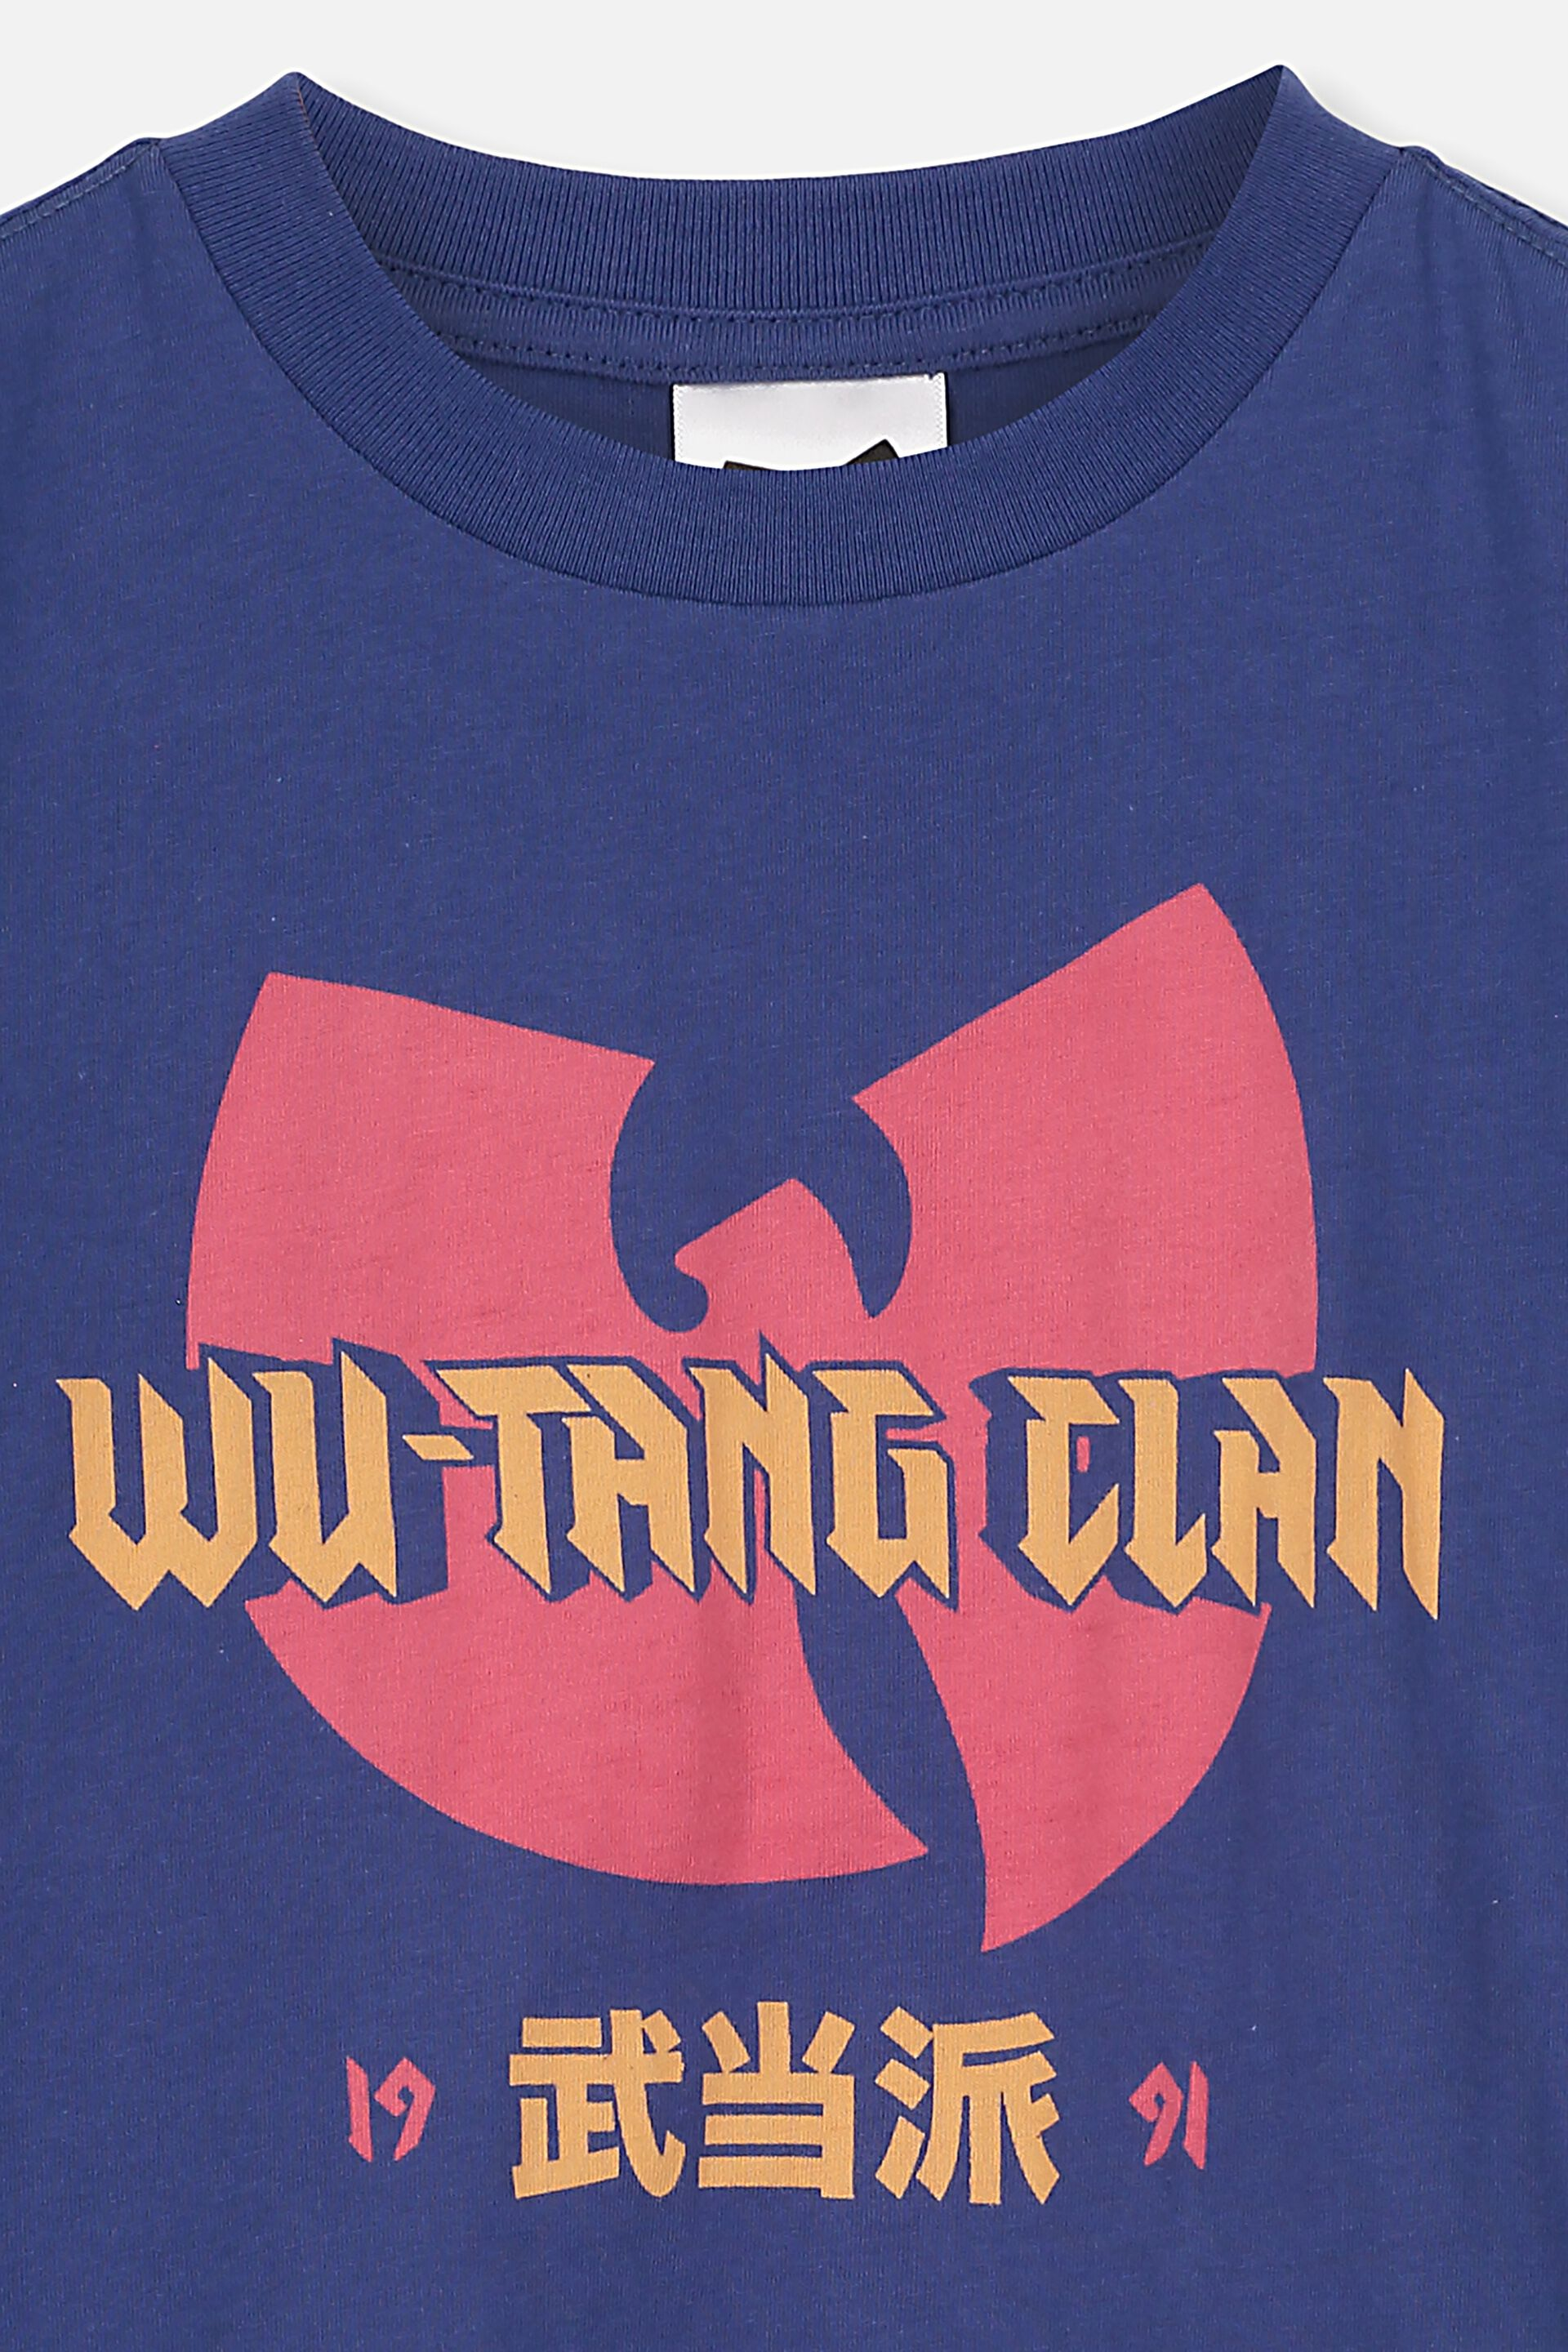 wu tang clan t-shirt model:violet kid shirt toddler clothing Children size:1-8 y